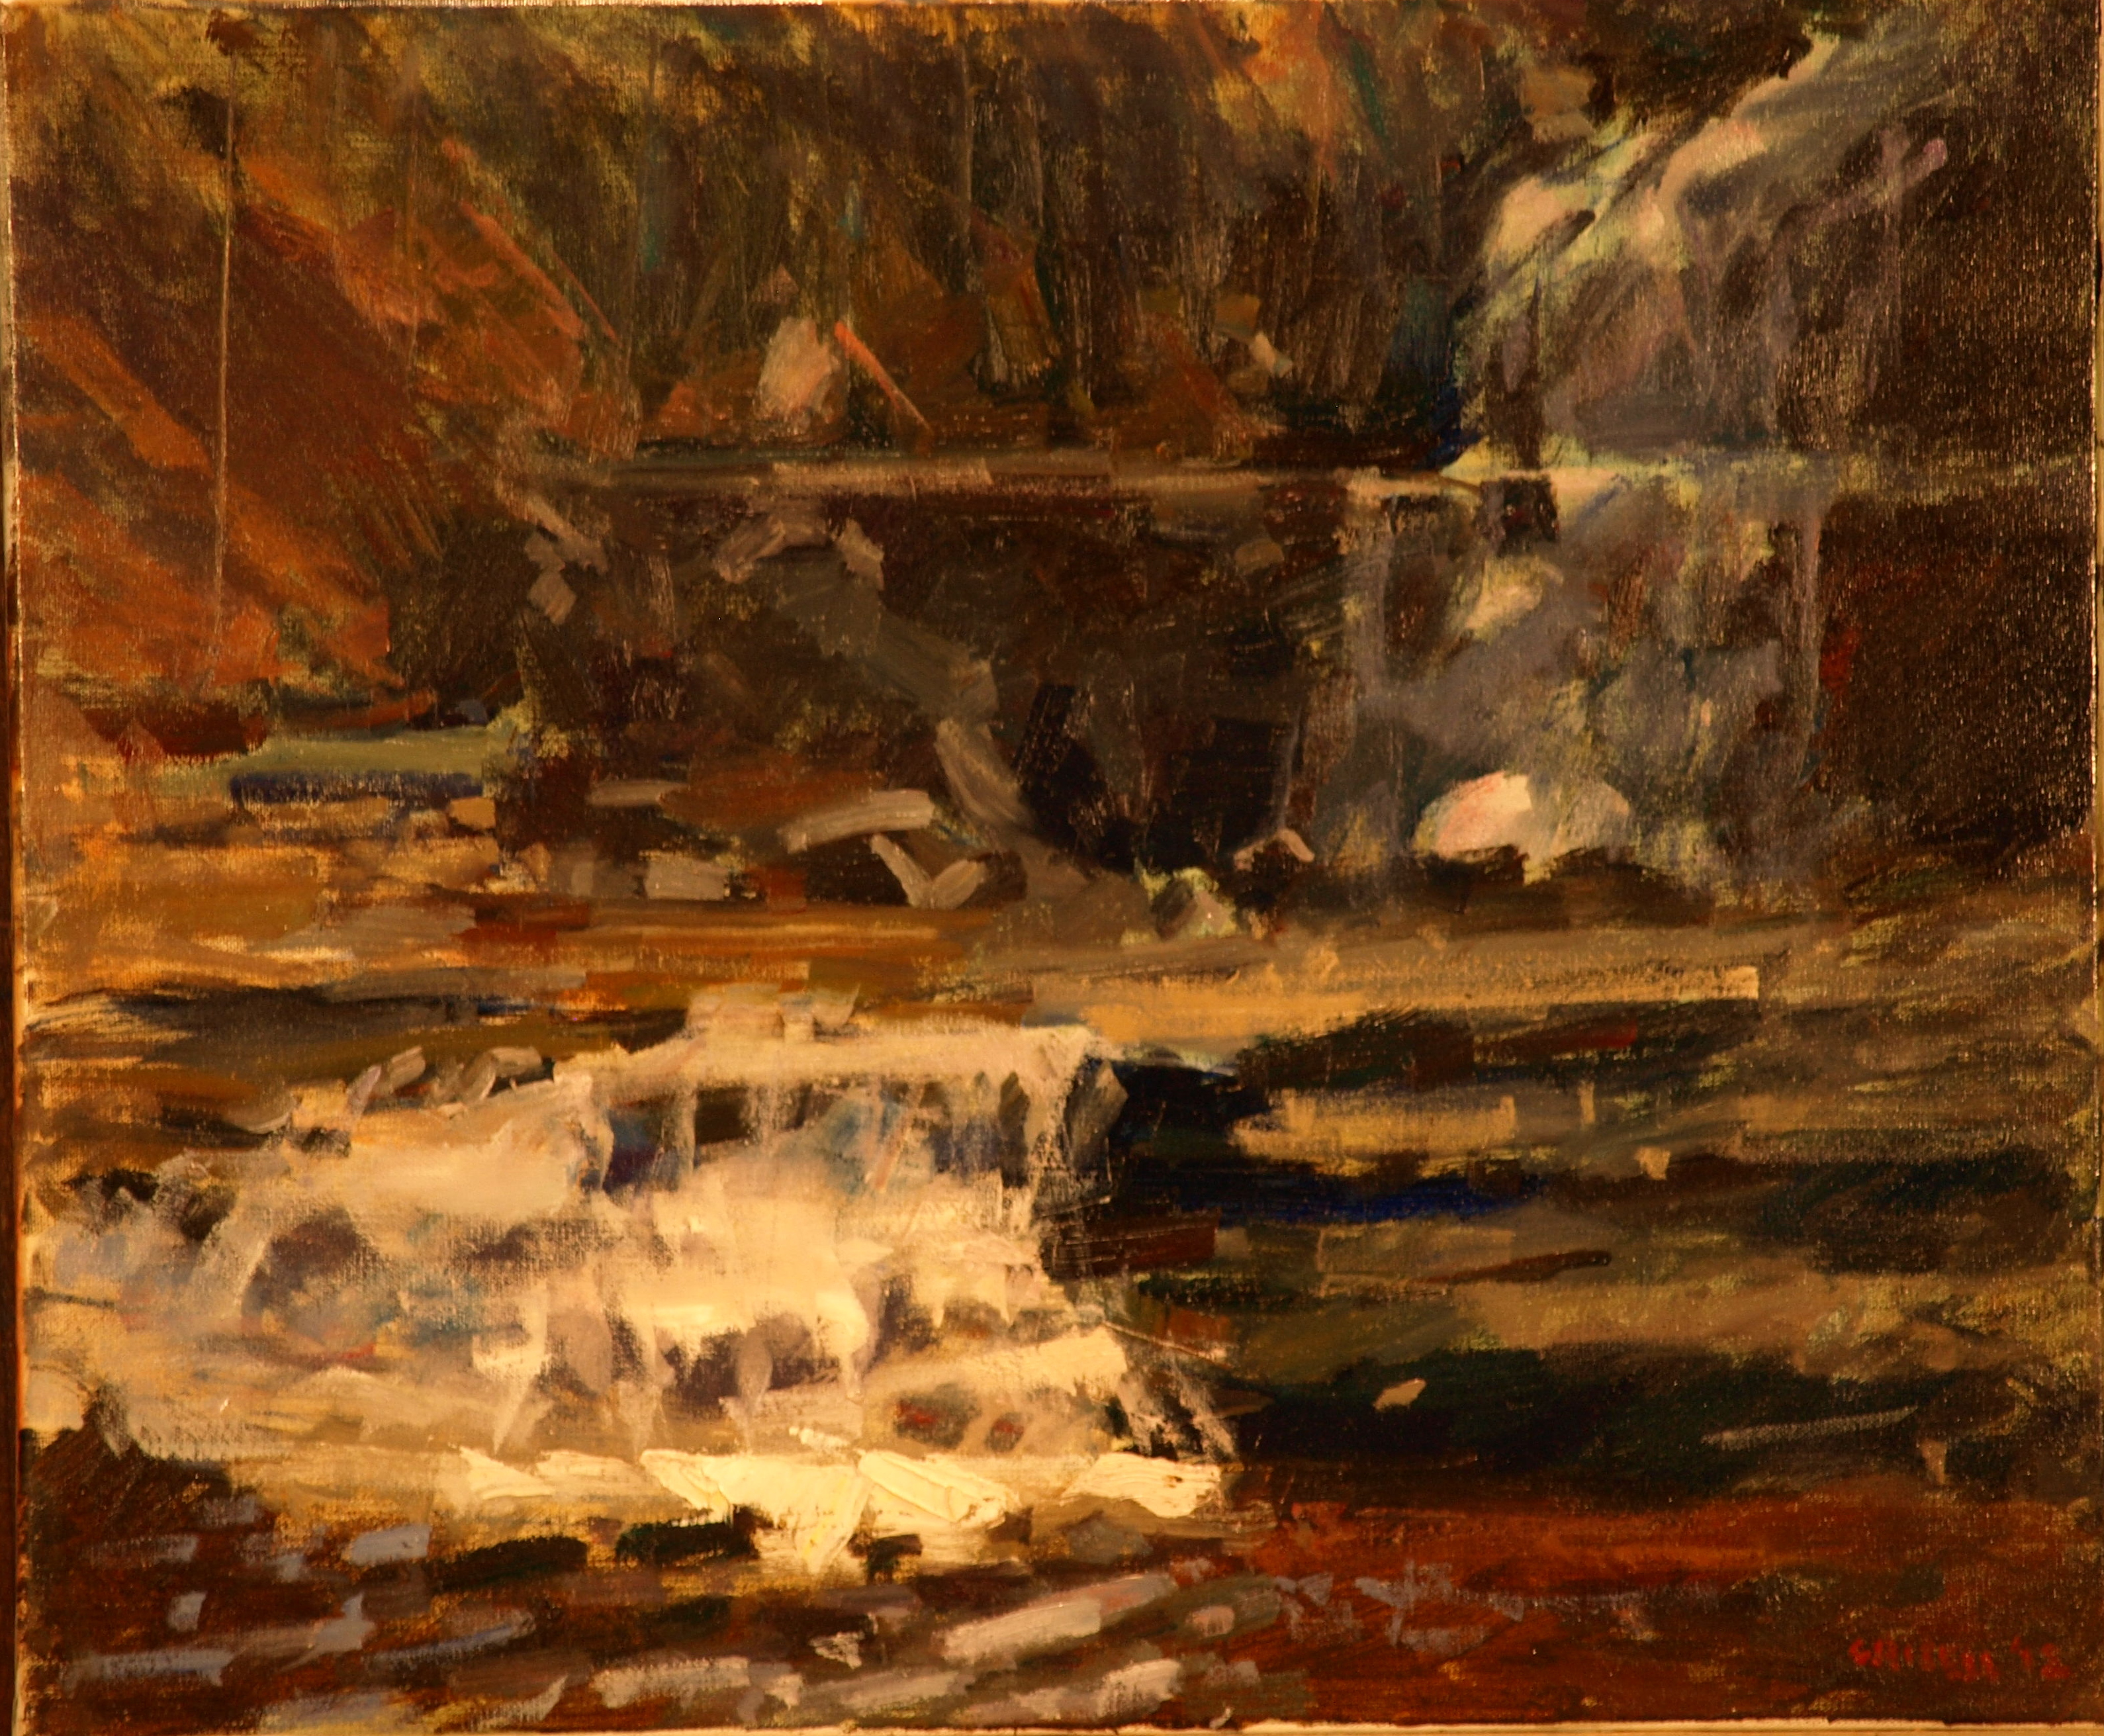 Kent Falls, Oil on Canvas, 20 x 24 Inches, by Susan Grisell, $650